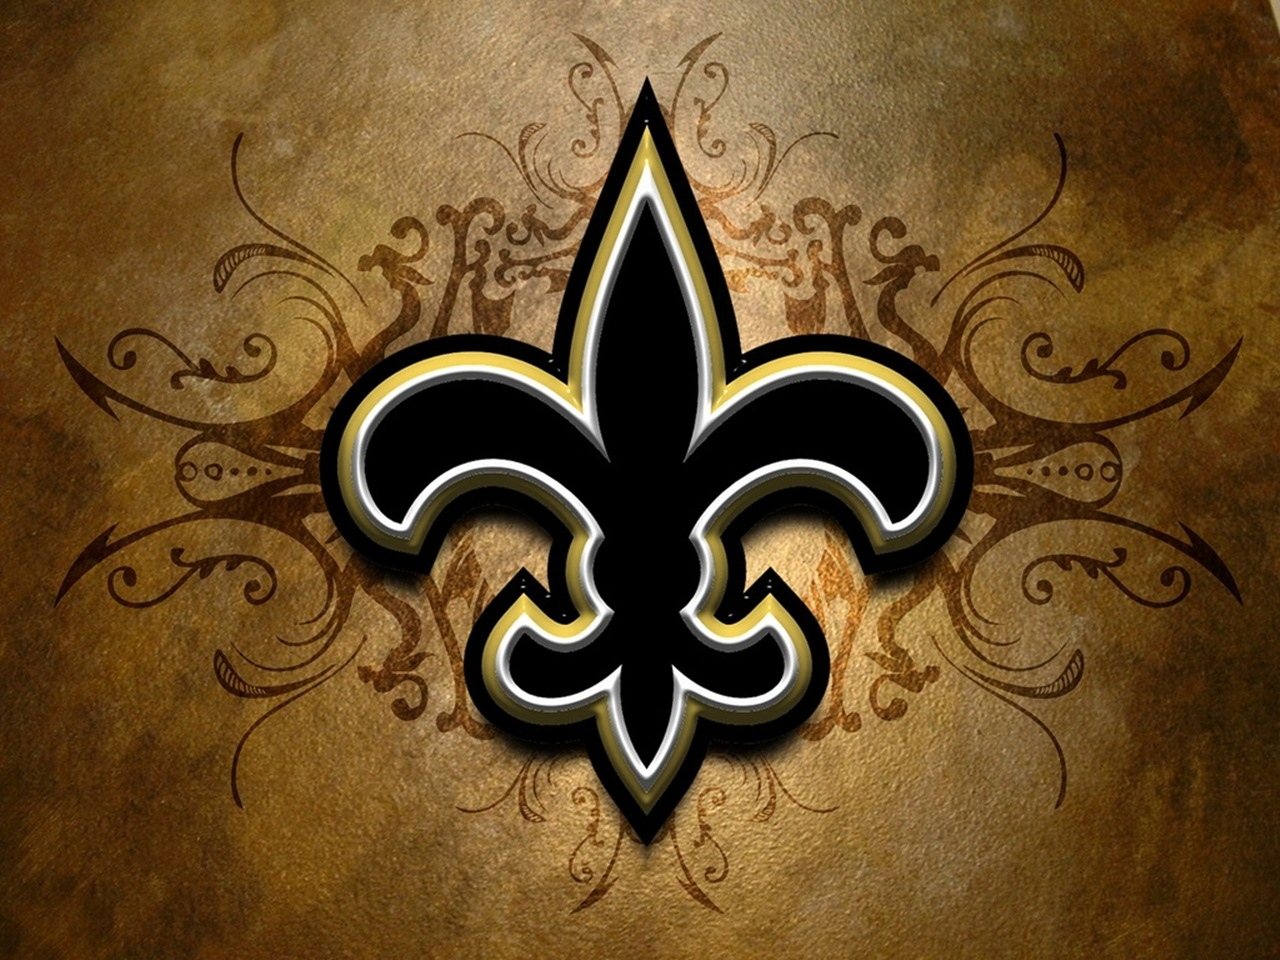 Download new orleans saints wallpaper